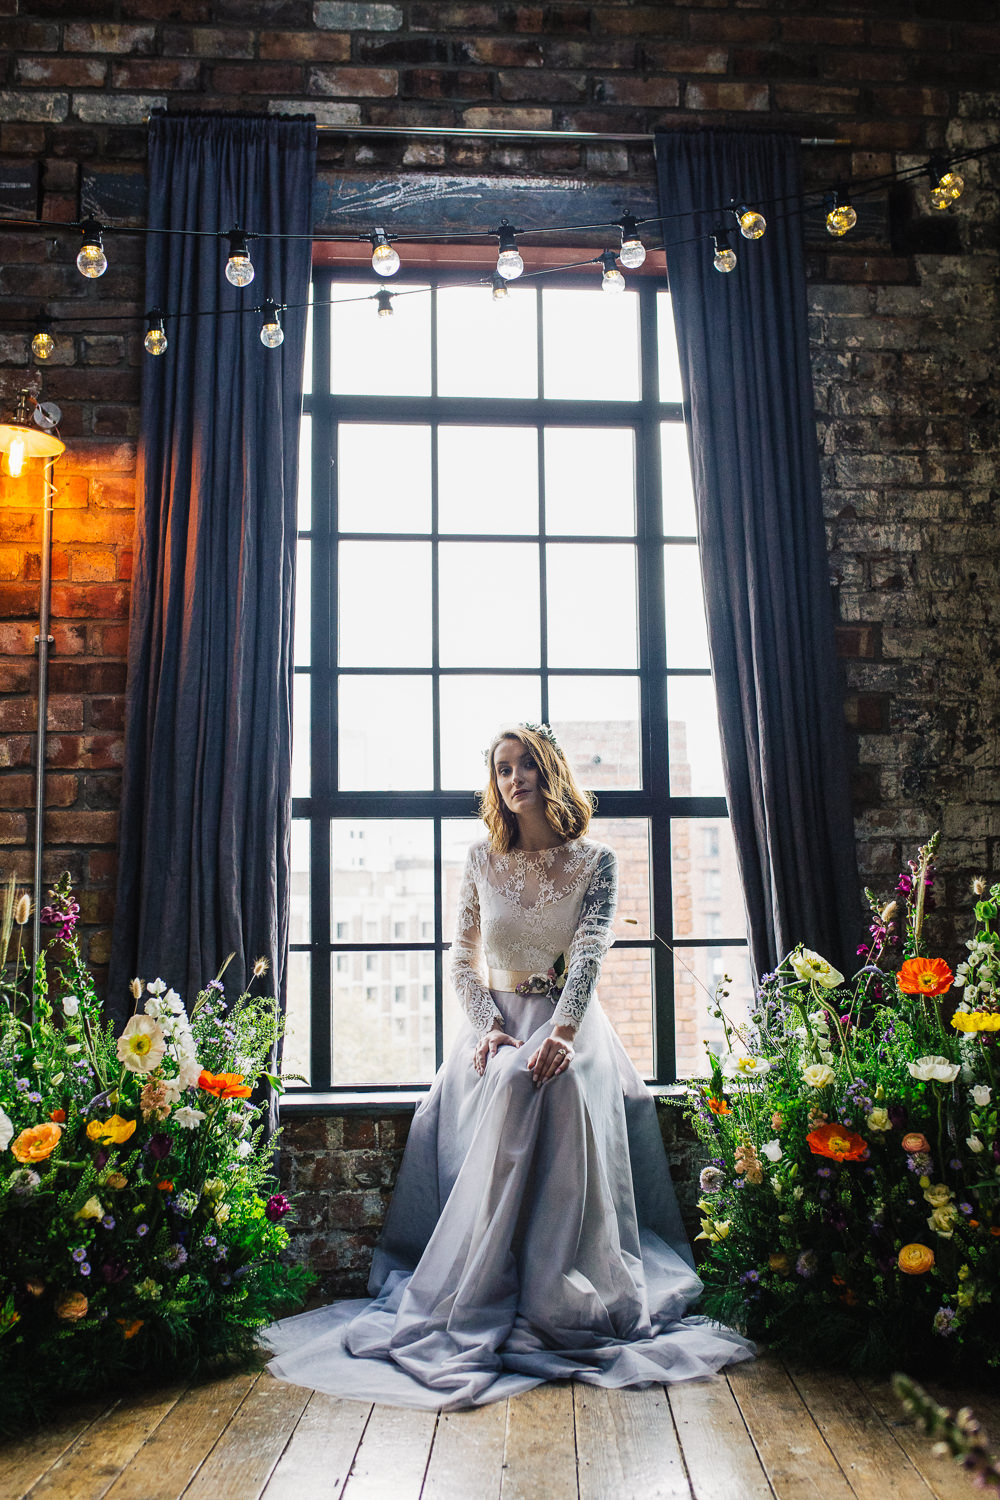 Bride Bridal Dress Gown Embroidery Leaves Berries Sleeves Meadow Flowers Meadowscape Arrangement Wild Colourful Poppy Poppies Playful Cool Wedding Ideas Sophie Lake Photography